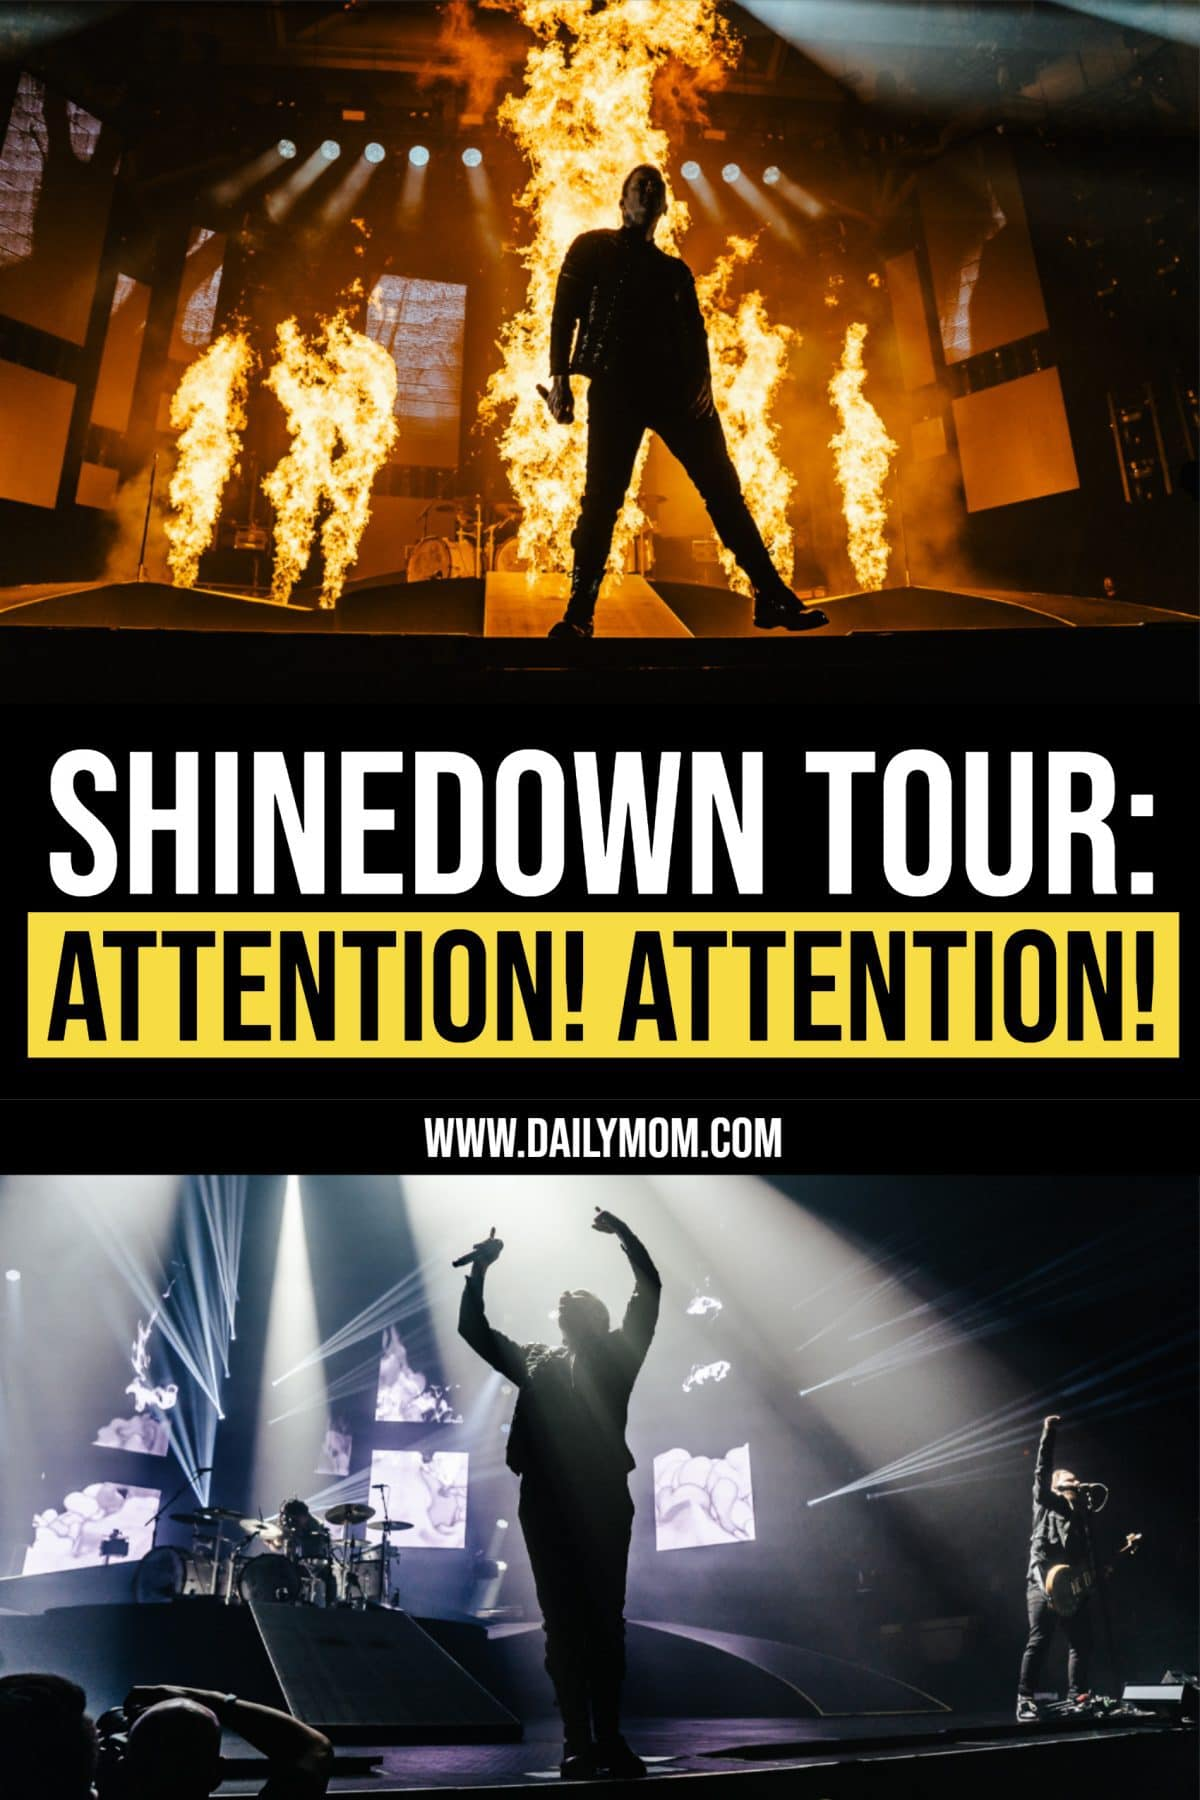 Shinedown Attention! Attention! Tour By Dm Concert Series